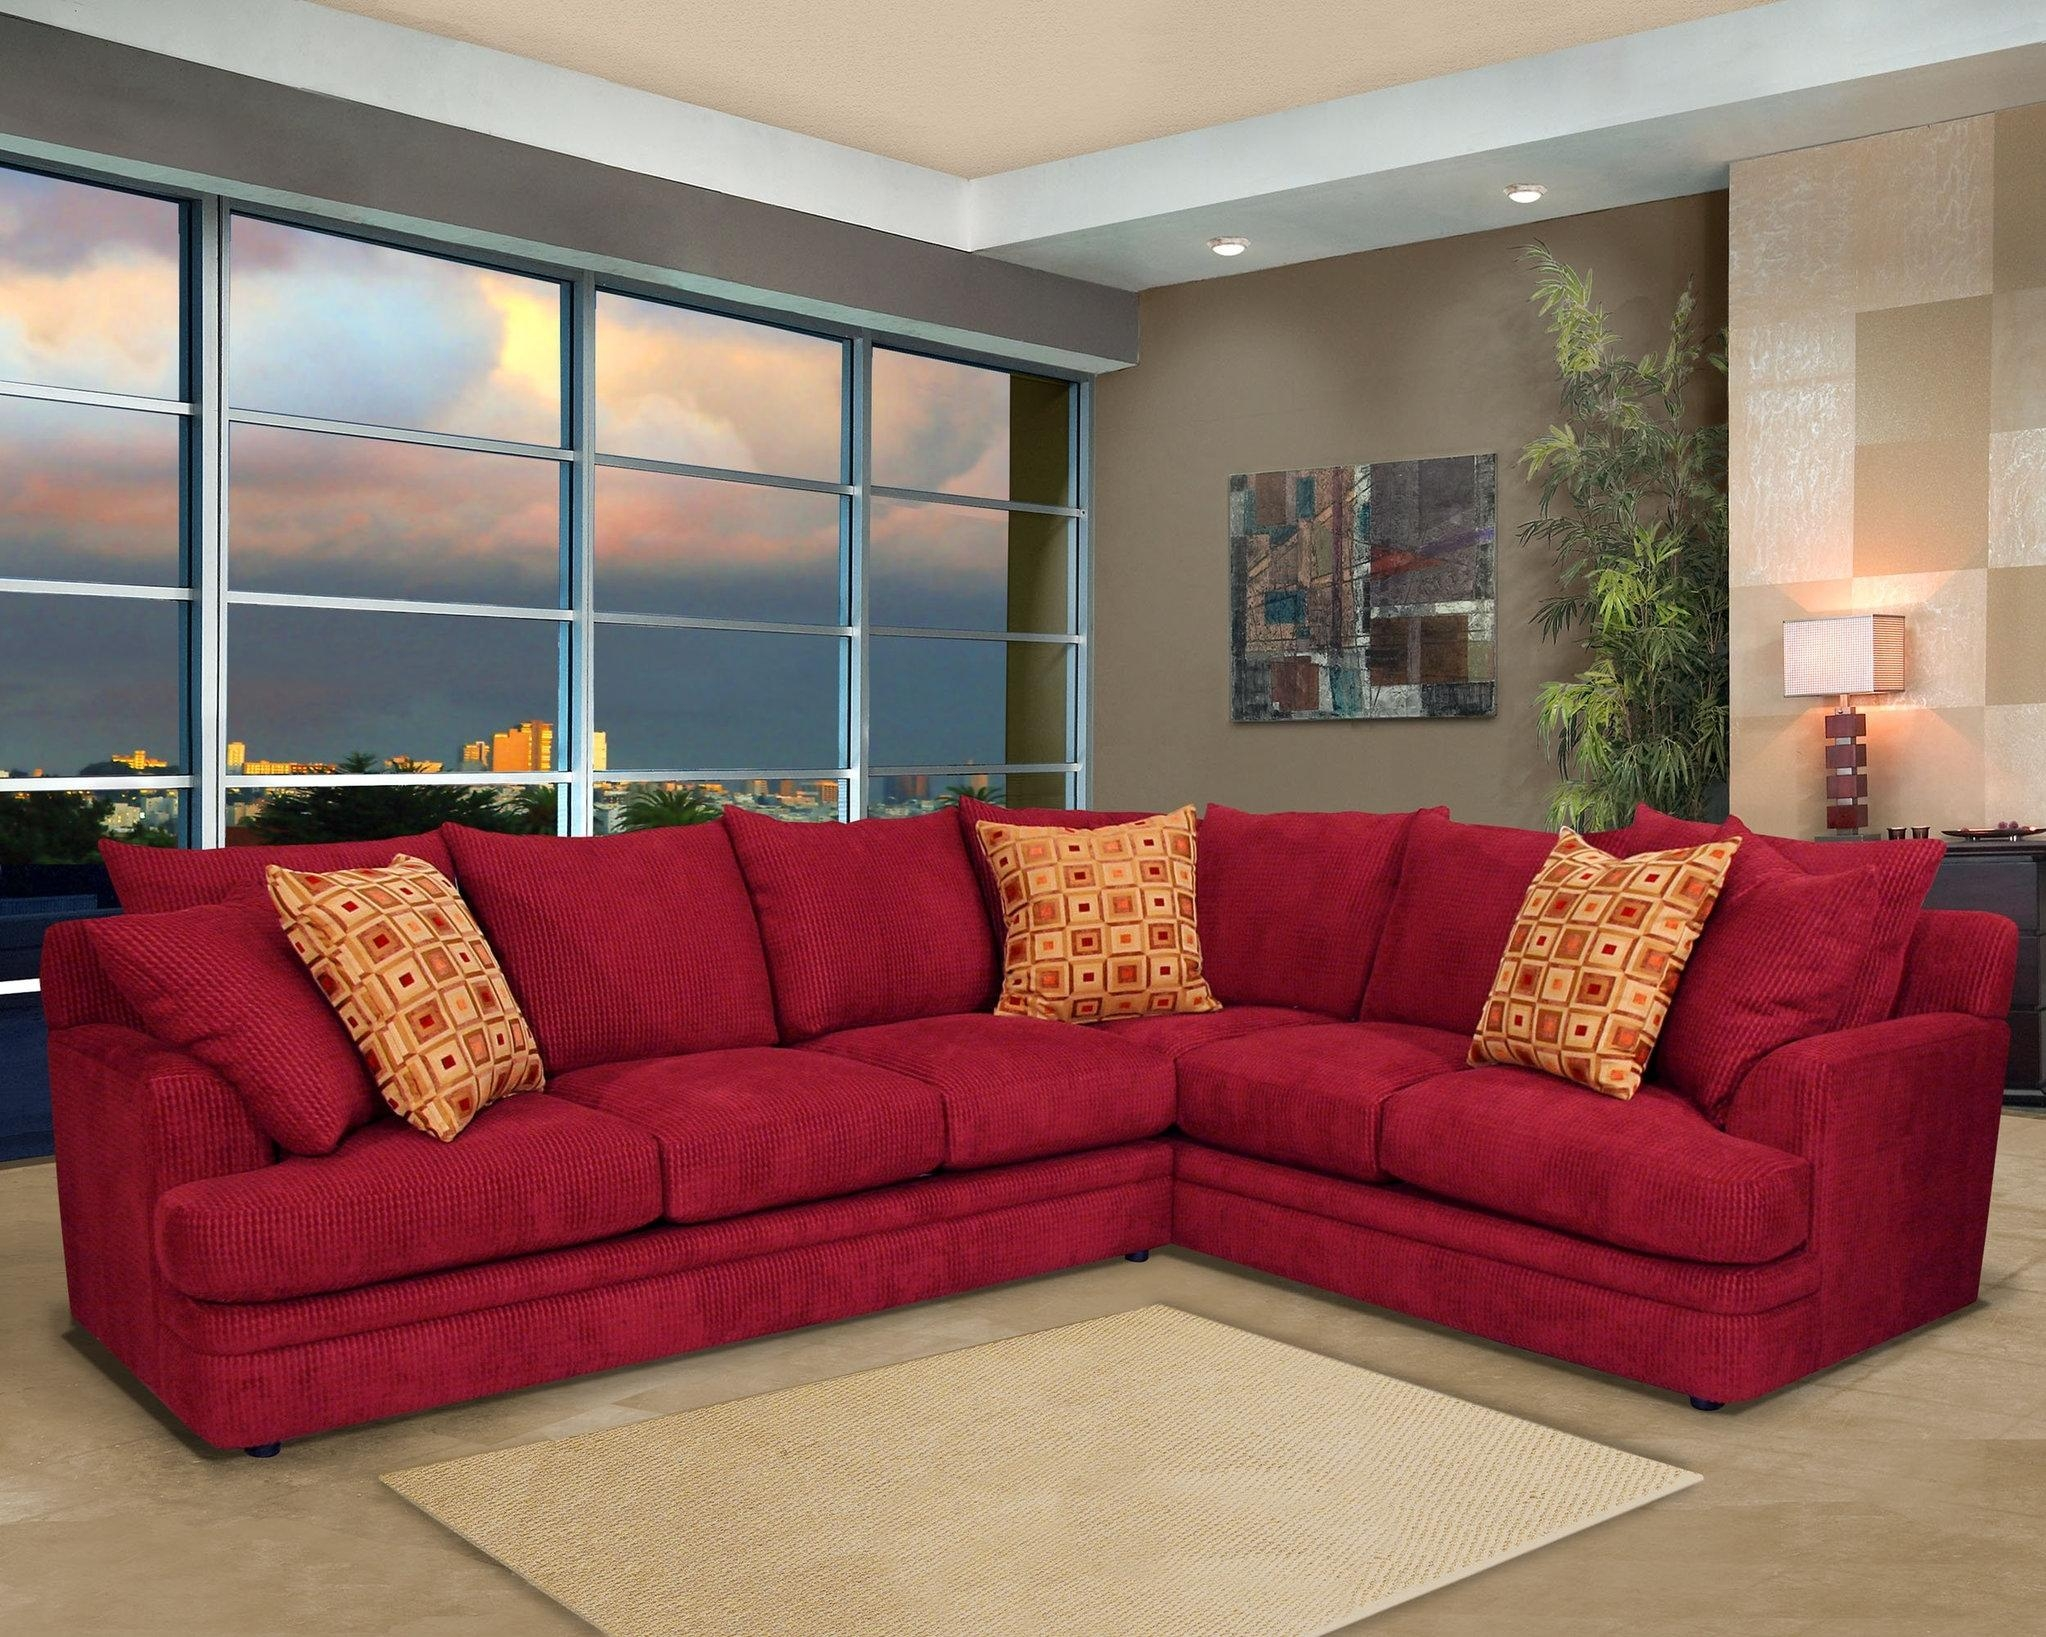 Furniture: Cheap Couches For Sale Under $100 | Couches And Sofas Intended For Cheap Red Sofas (View 20 of 20)